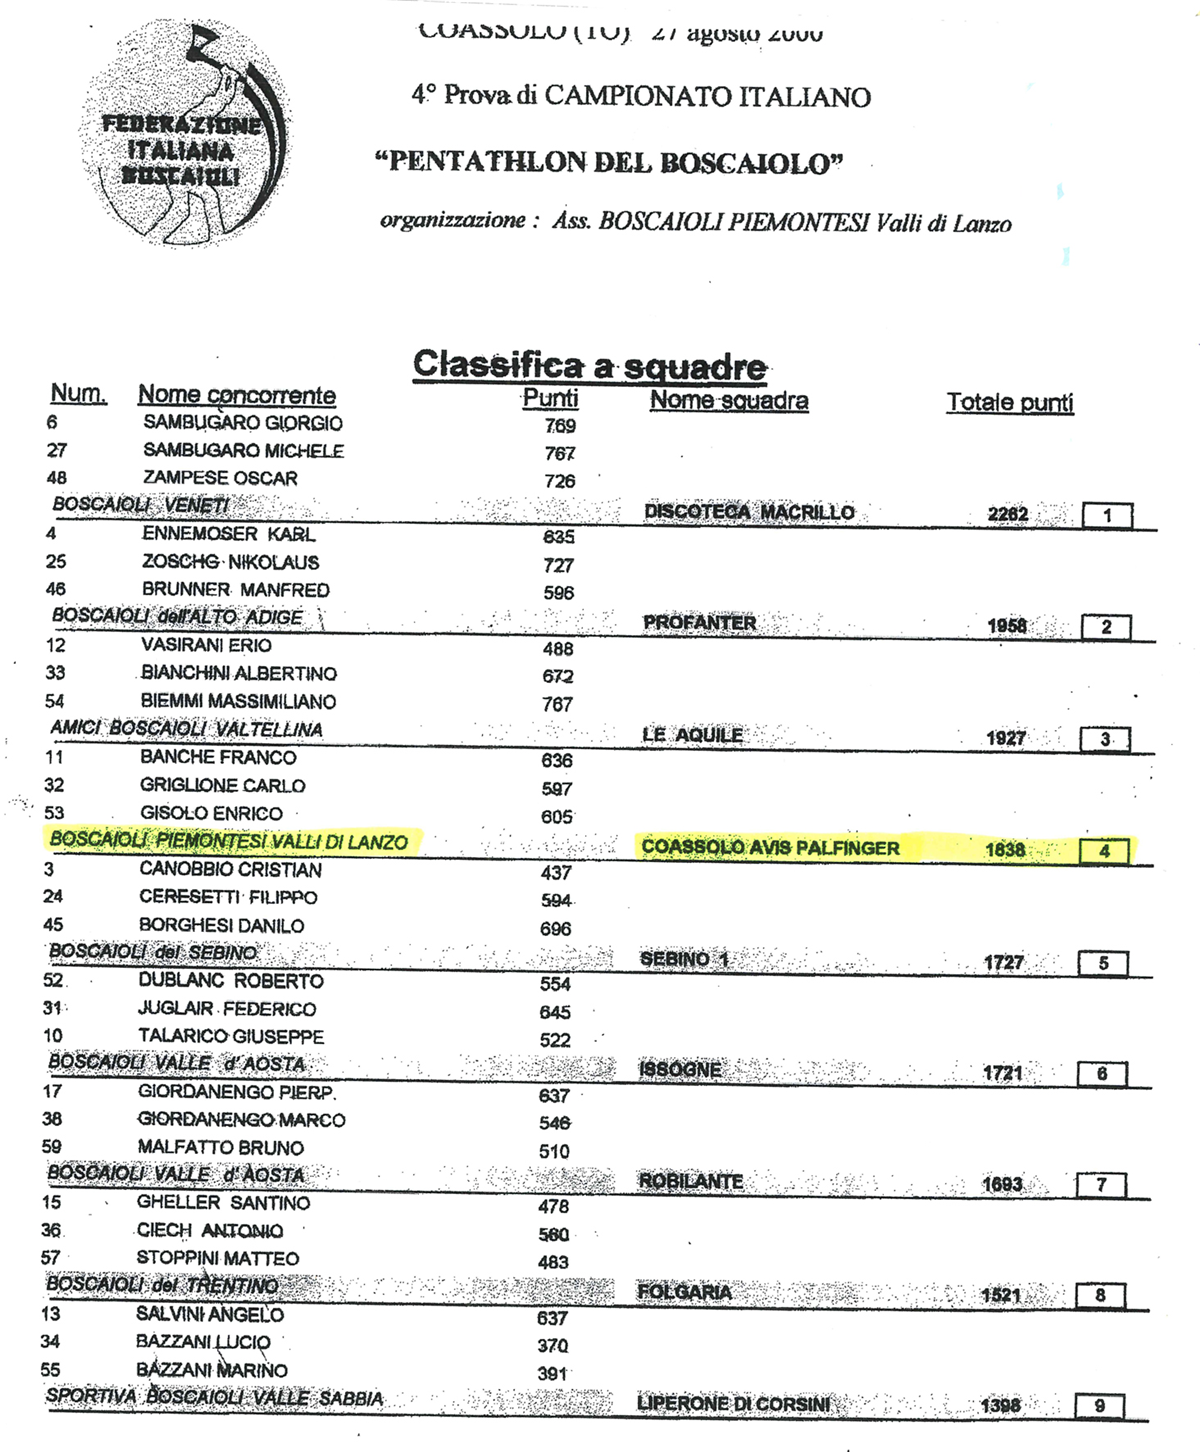 Classifica finale Pentathlon a squadre 2000